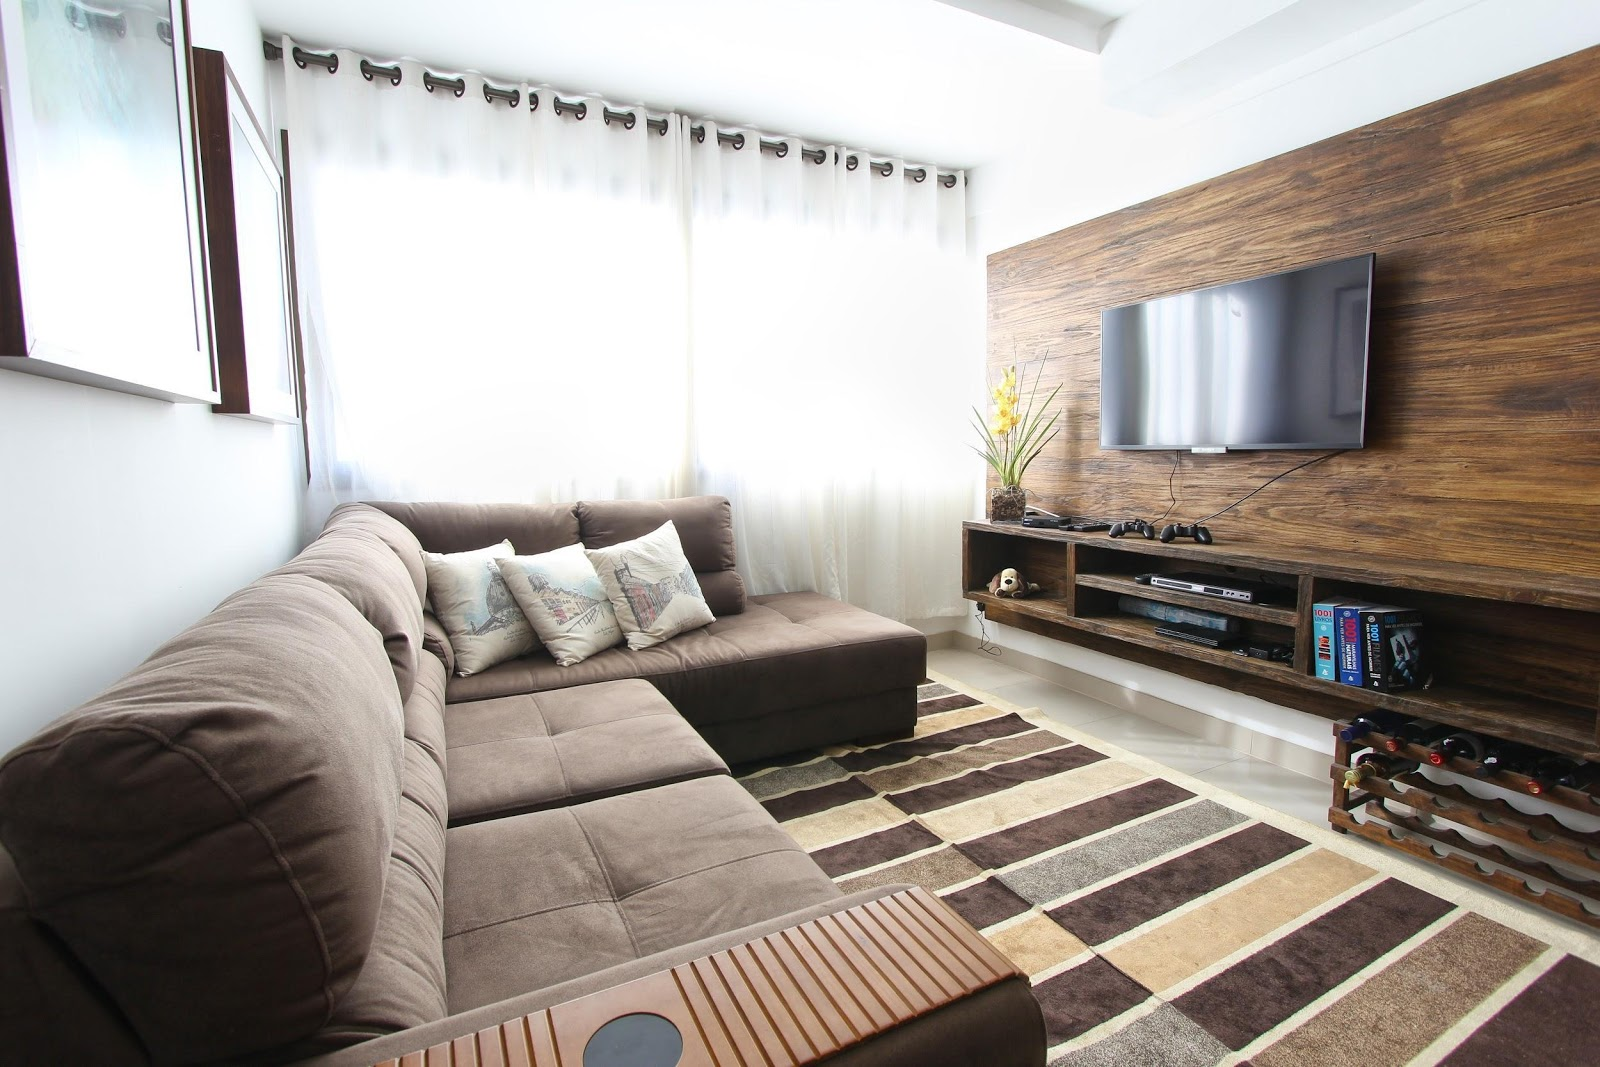 The Most Effective Method To Select The Right Curtains For Your Home